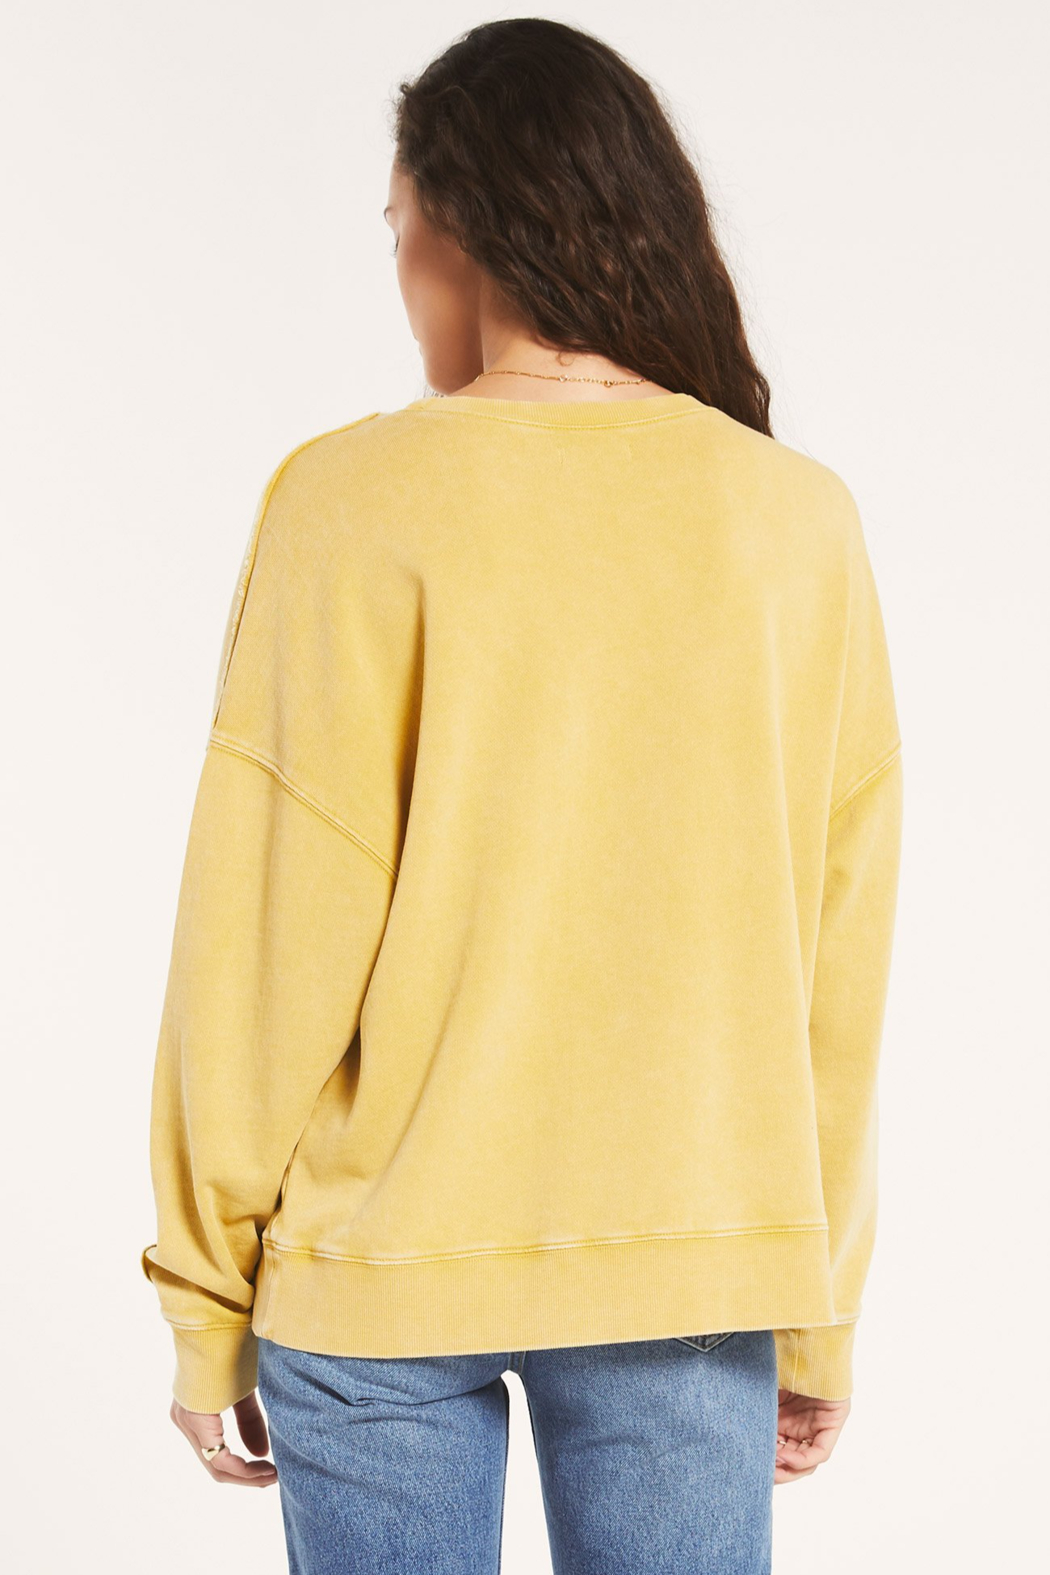 z supply Kyro Sweatshirt - Side Cropped Image